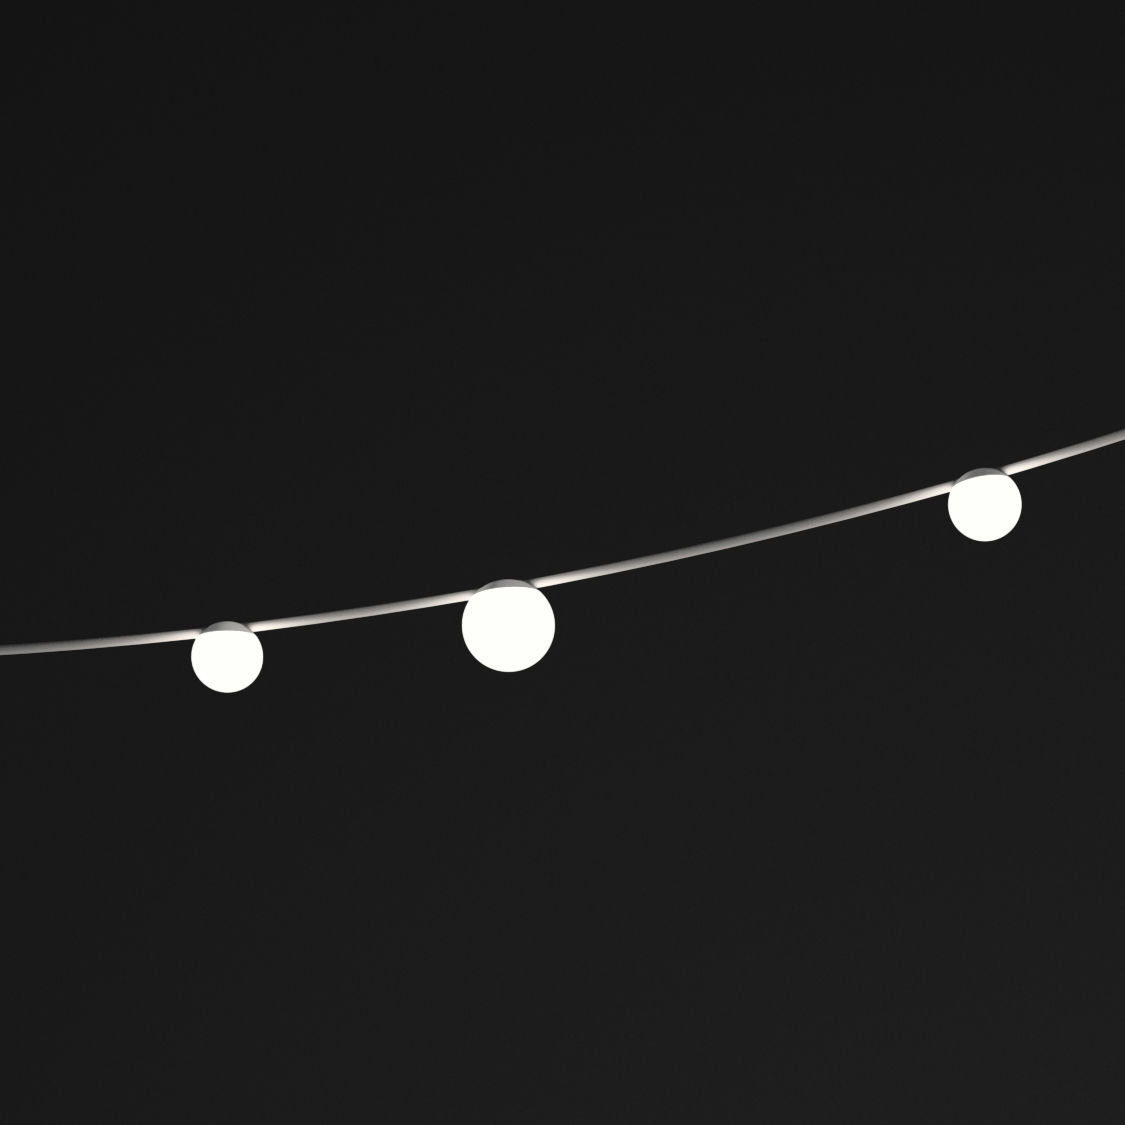 Lighting - Pendant Lighting - June LED Outdoor luminous garland - / Globes - L 130 cm by Vibia - Globes / Brown & white - Painted steel, Polycarbonate